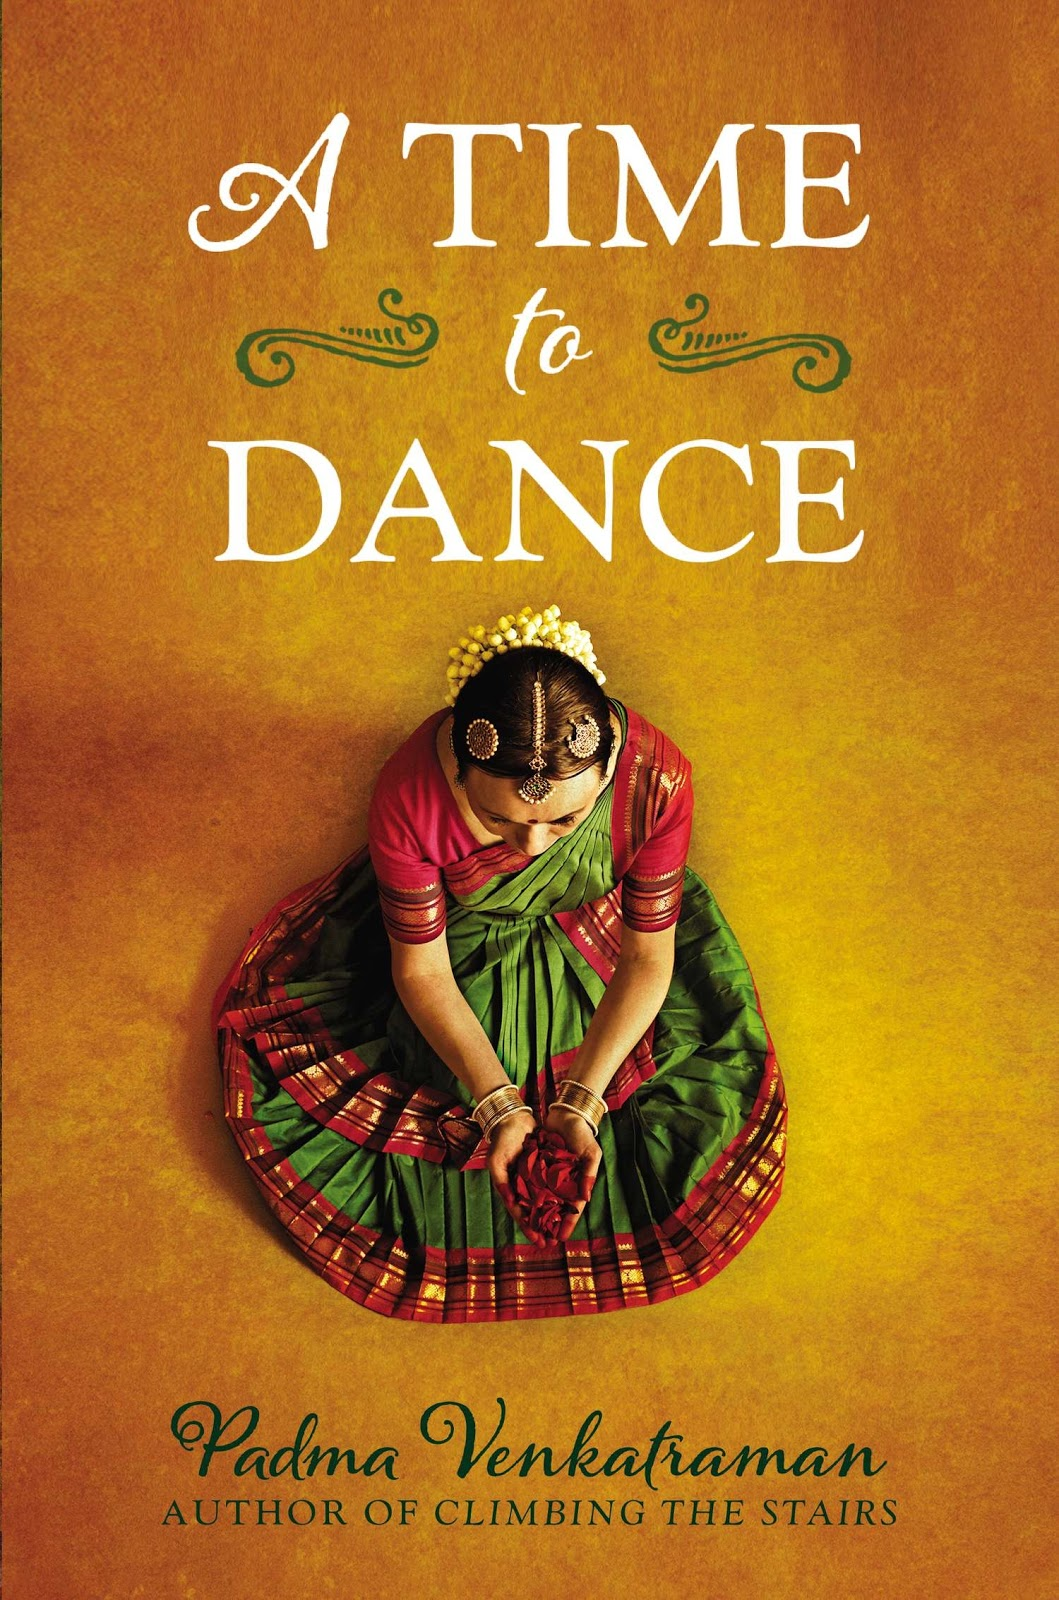 A Time To Dance (Padma Venkatraman)